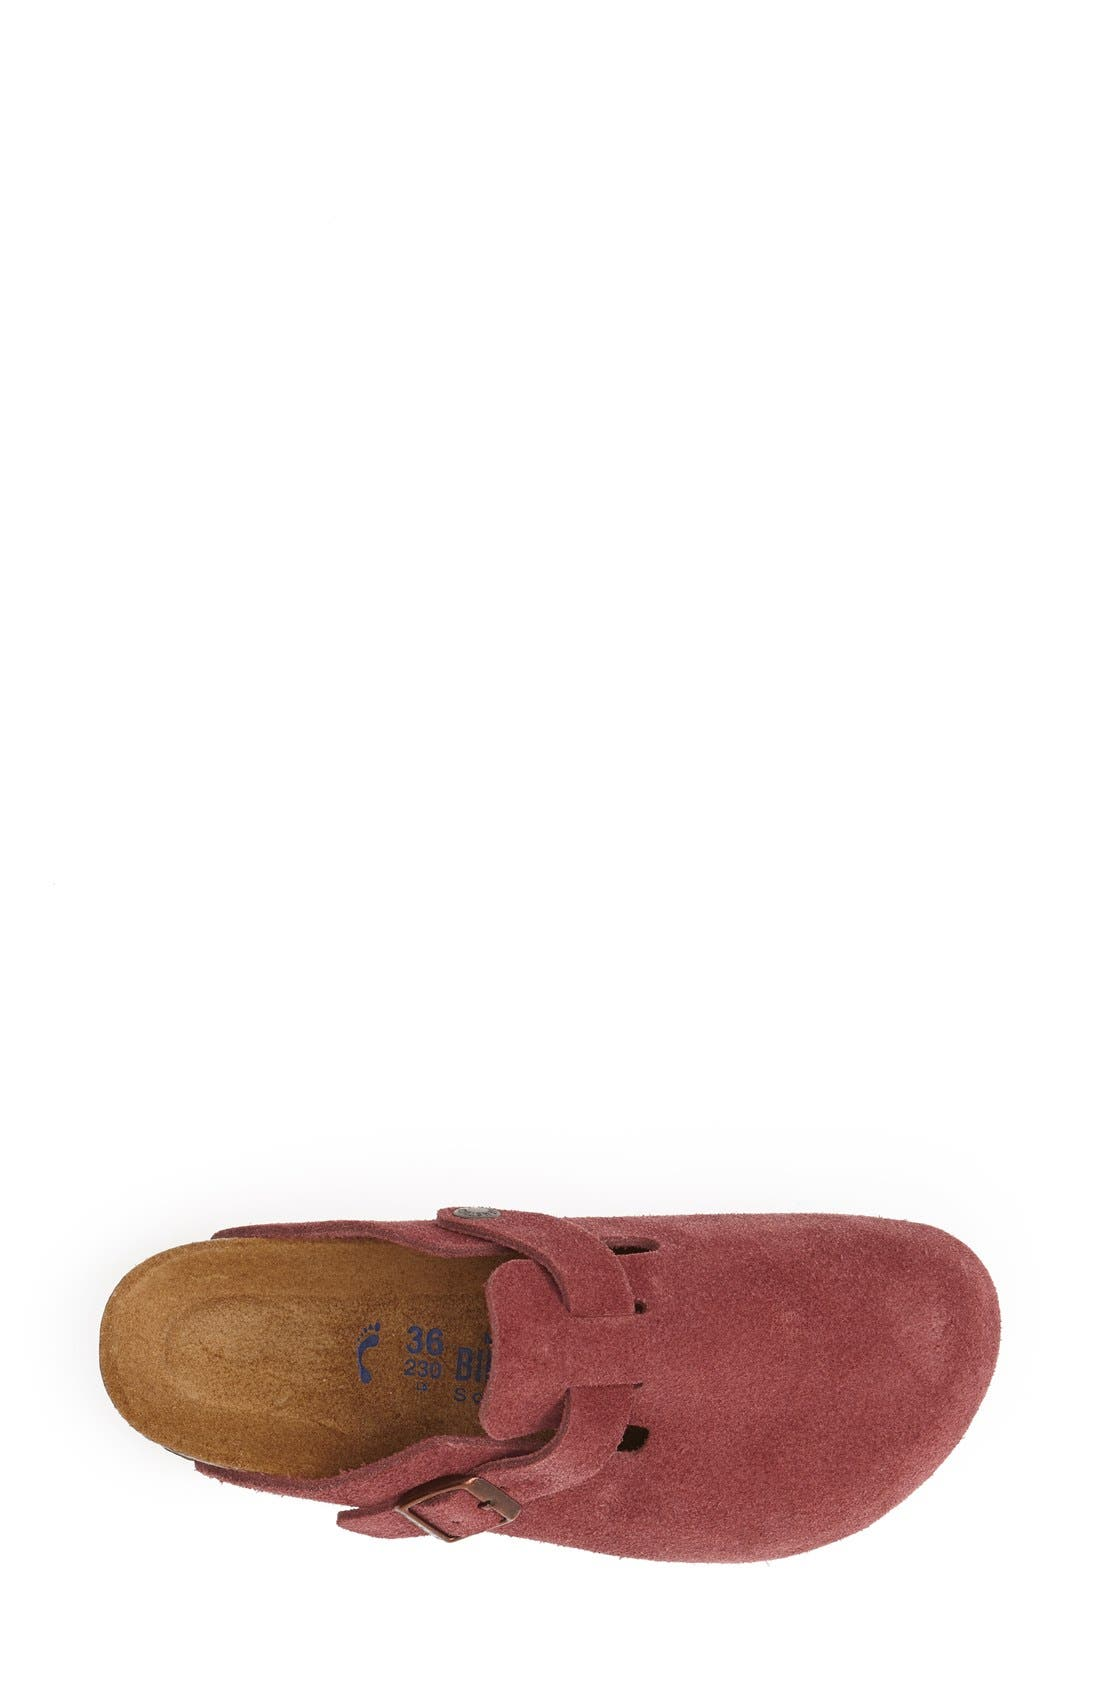 'Boston' Classic Oiled Leather Clog,                             Alternate thumbnail 44, color,